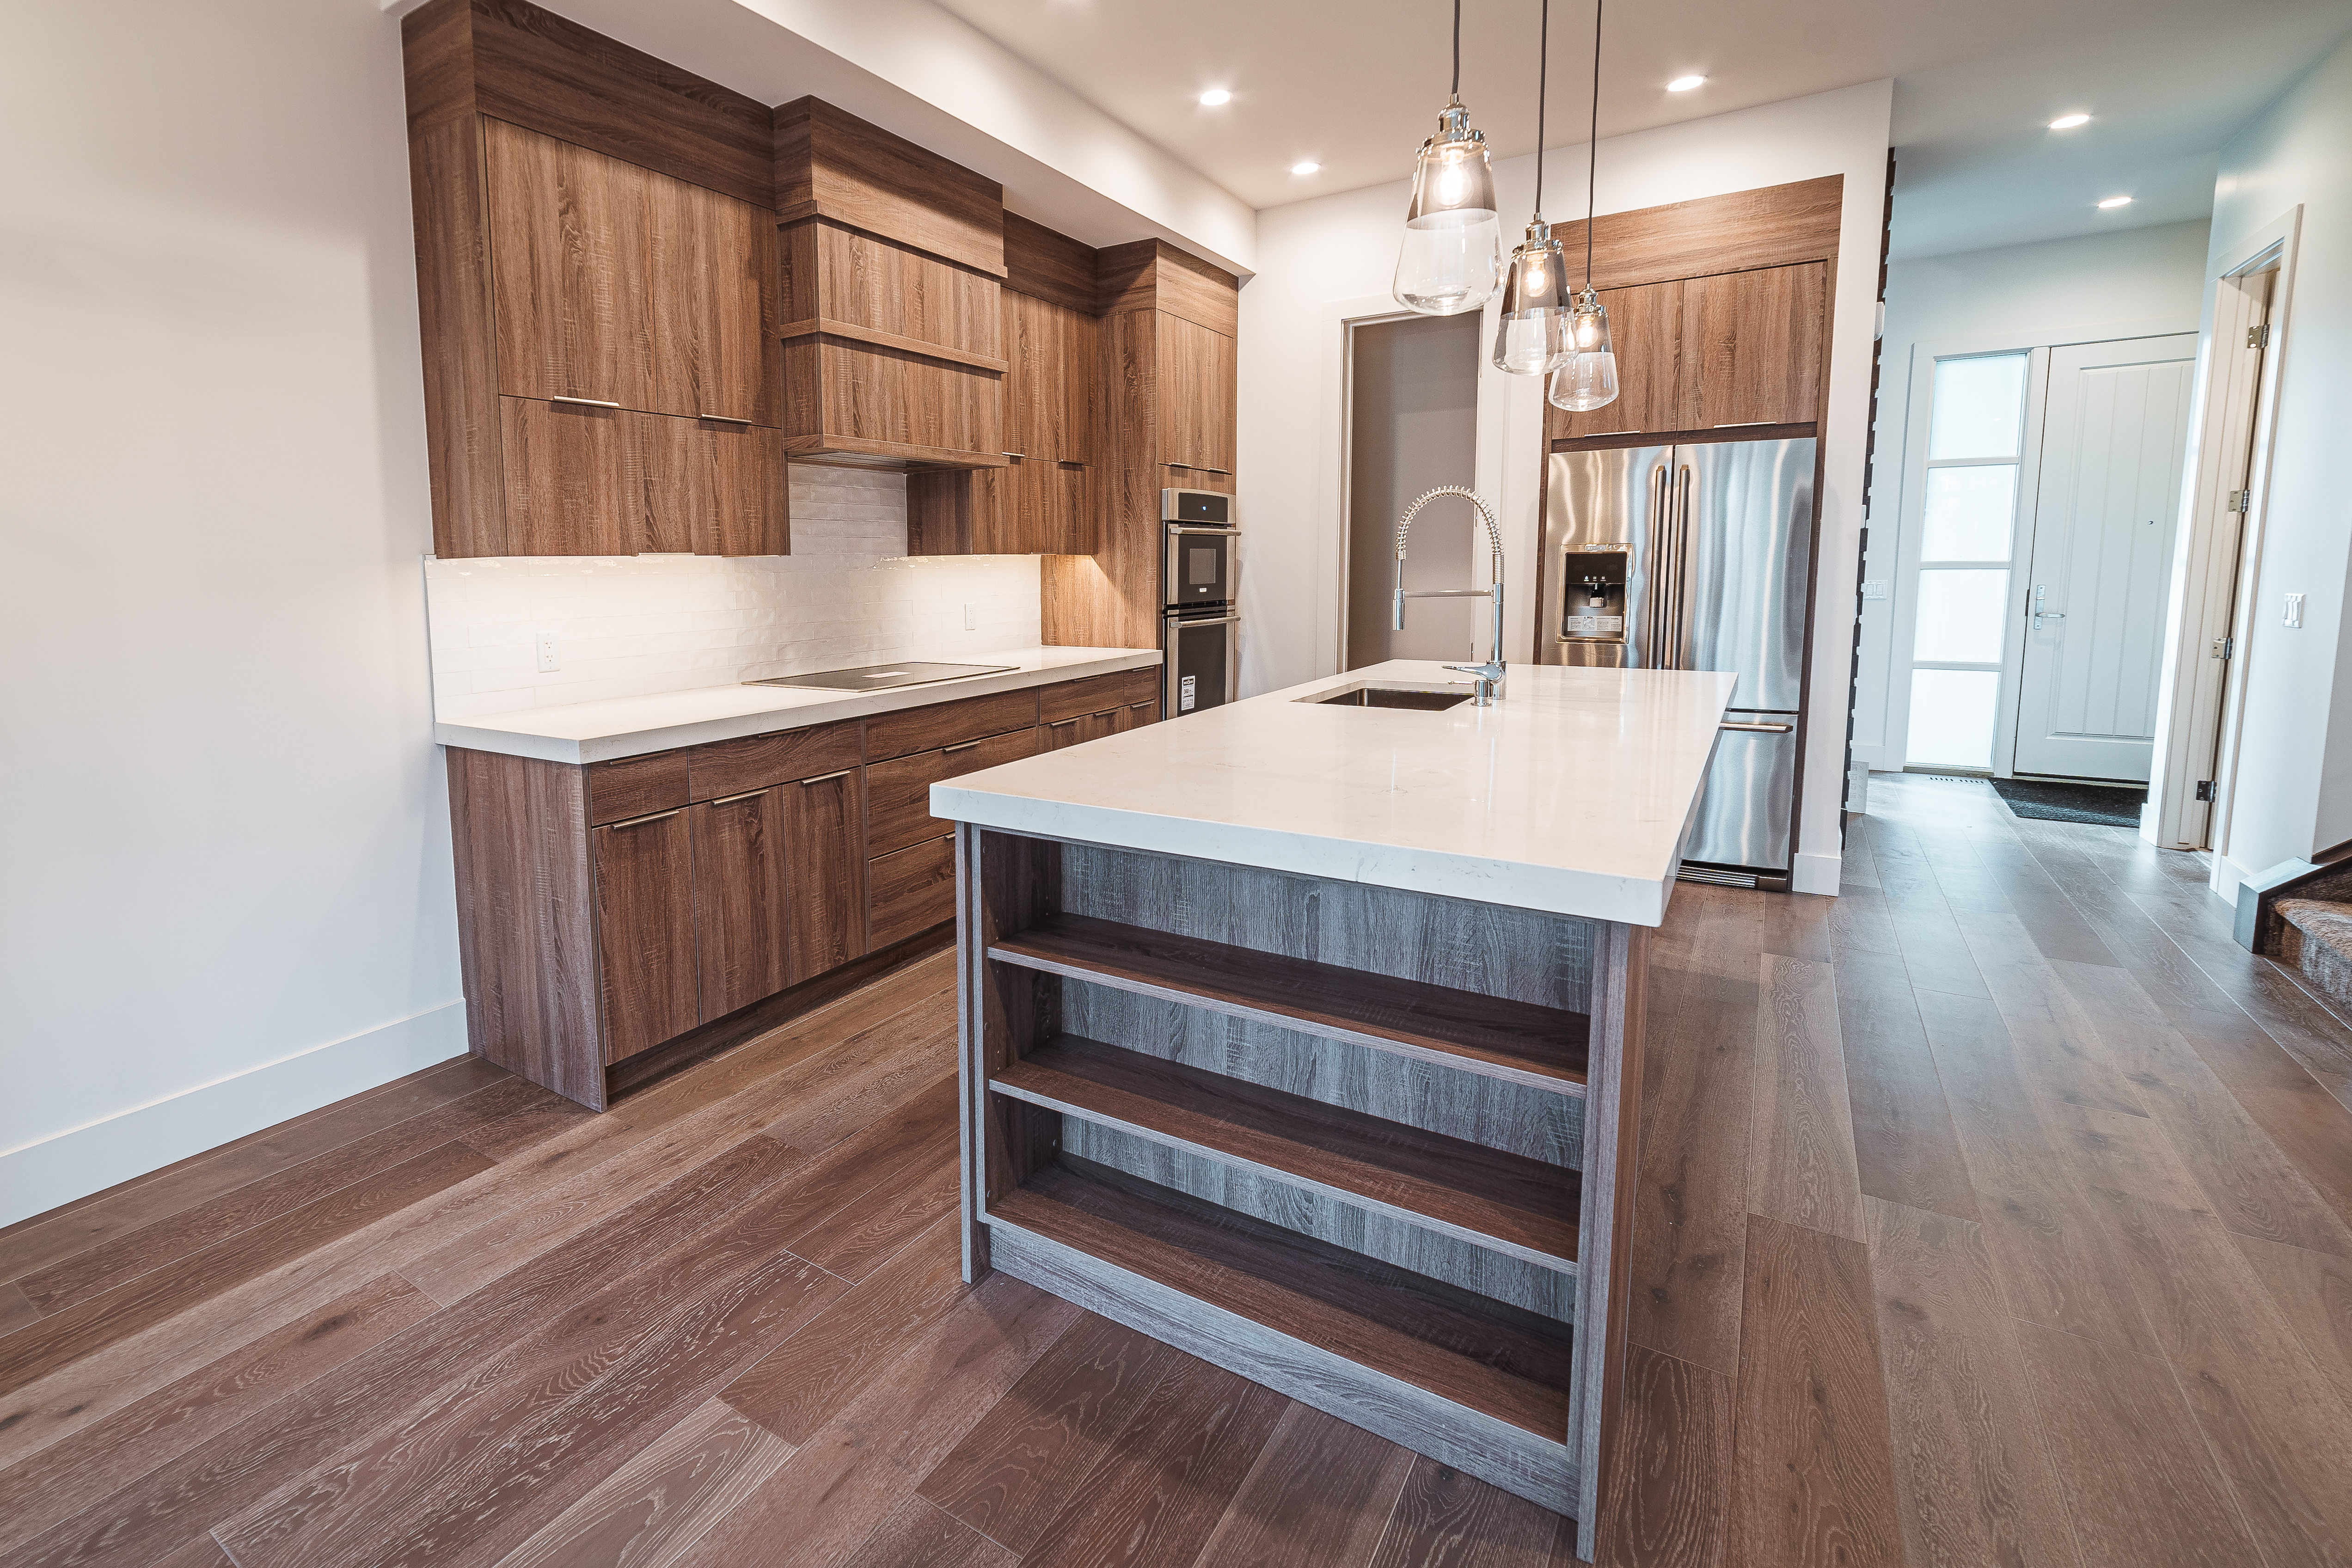 Woodcraft Kitchen Cabinets Woodcraft Kitchen Cabinets Is A Construction Company Based Out Of Canada